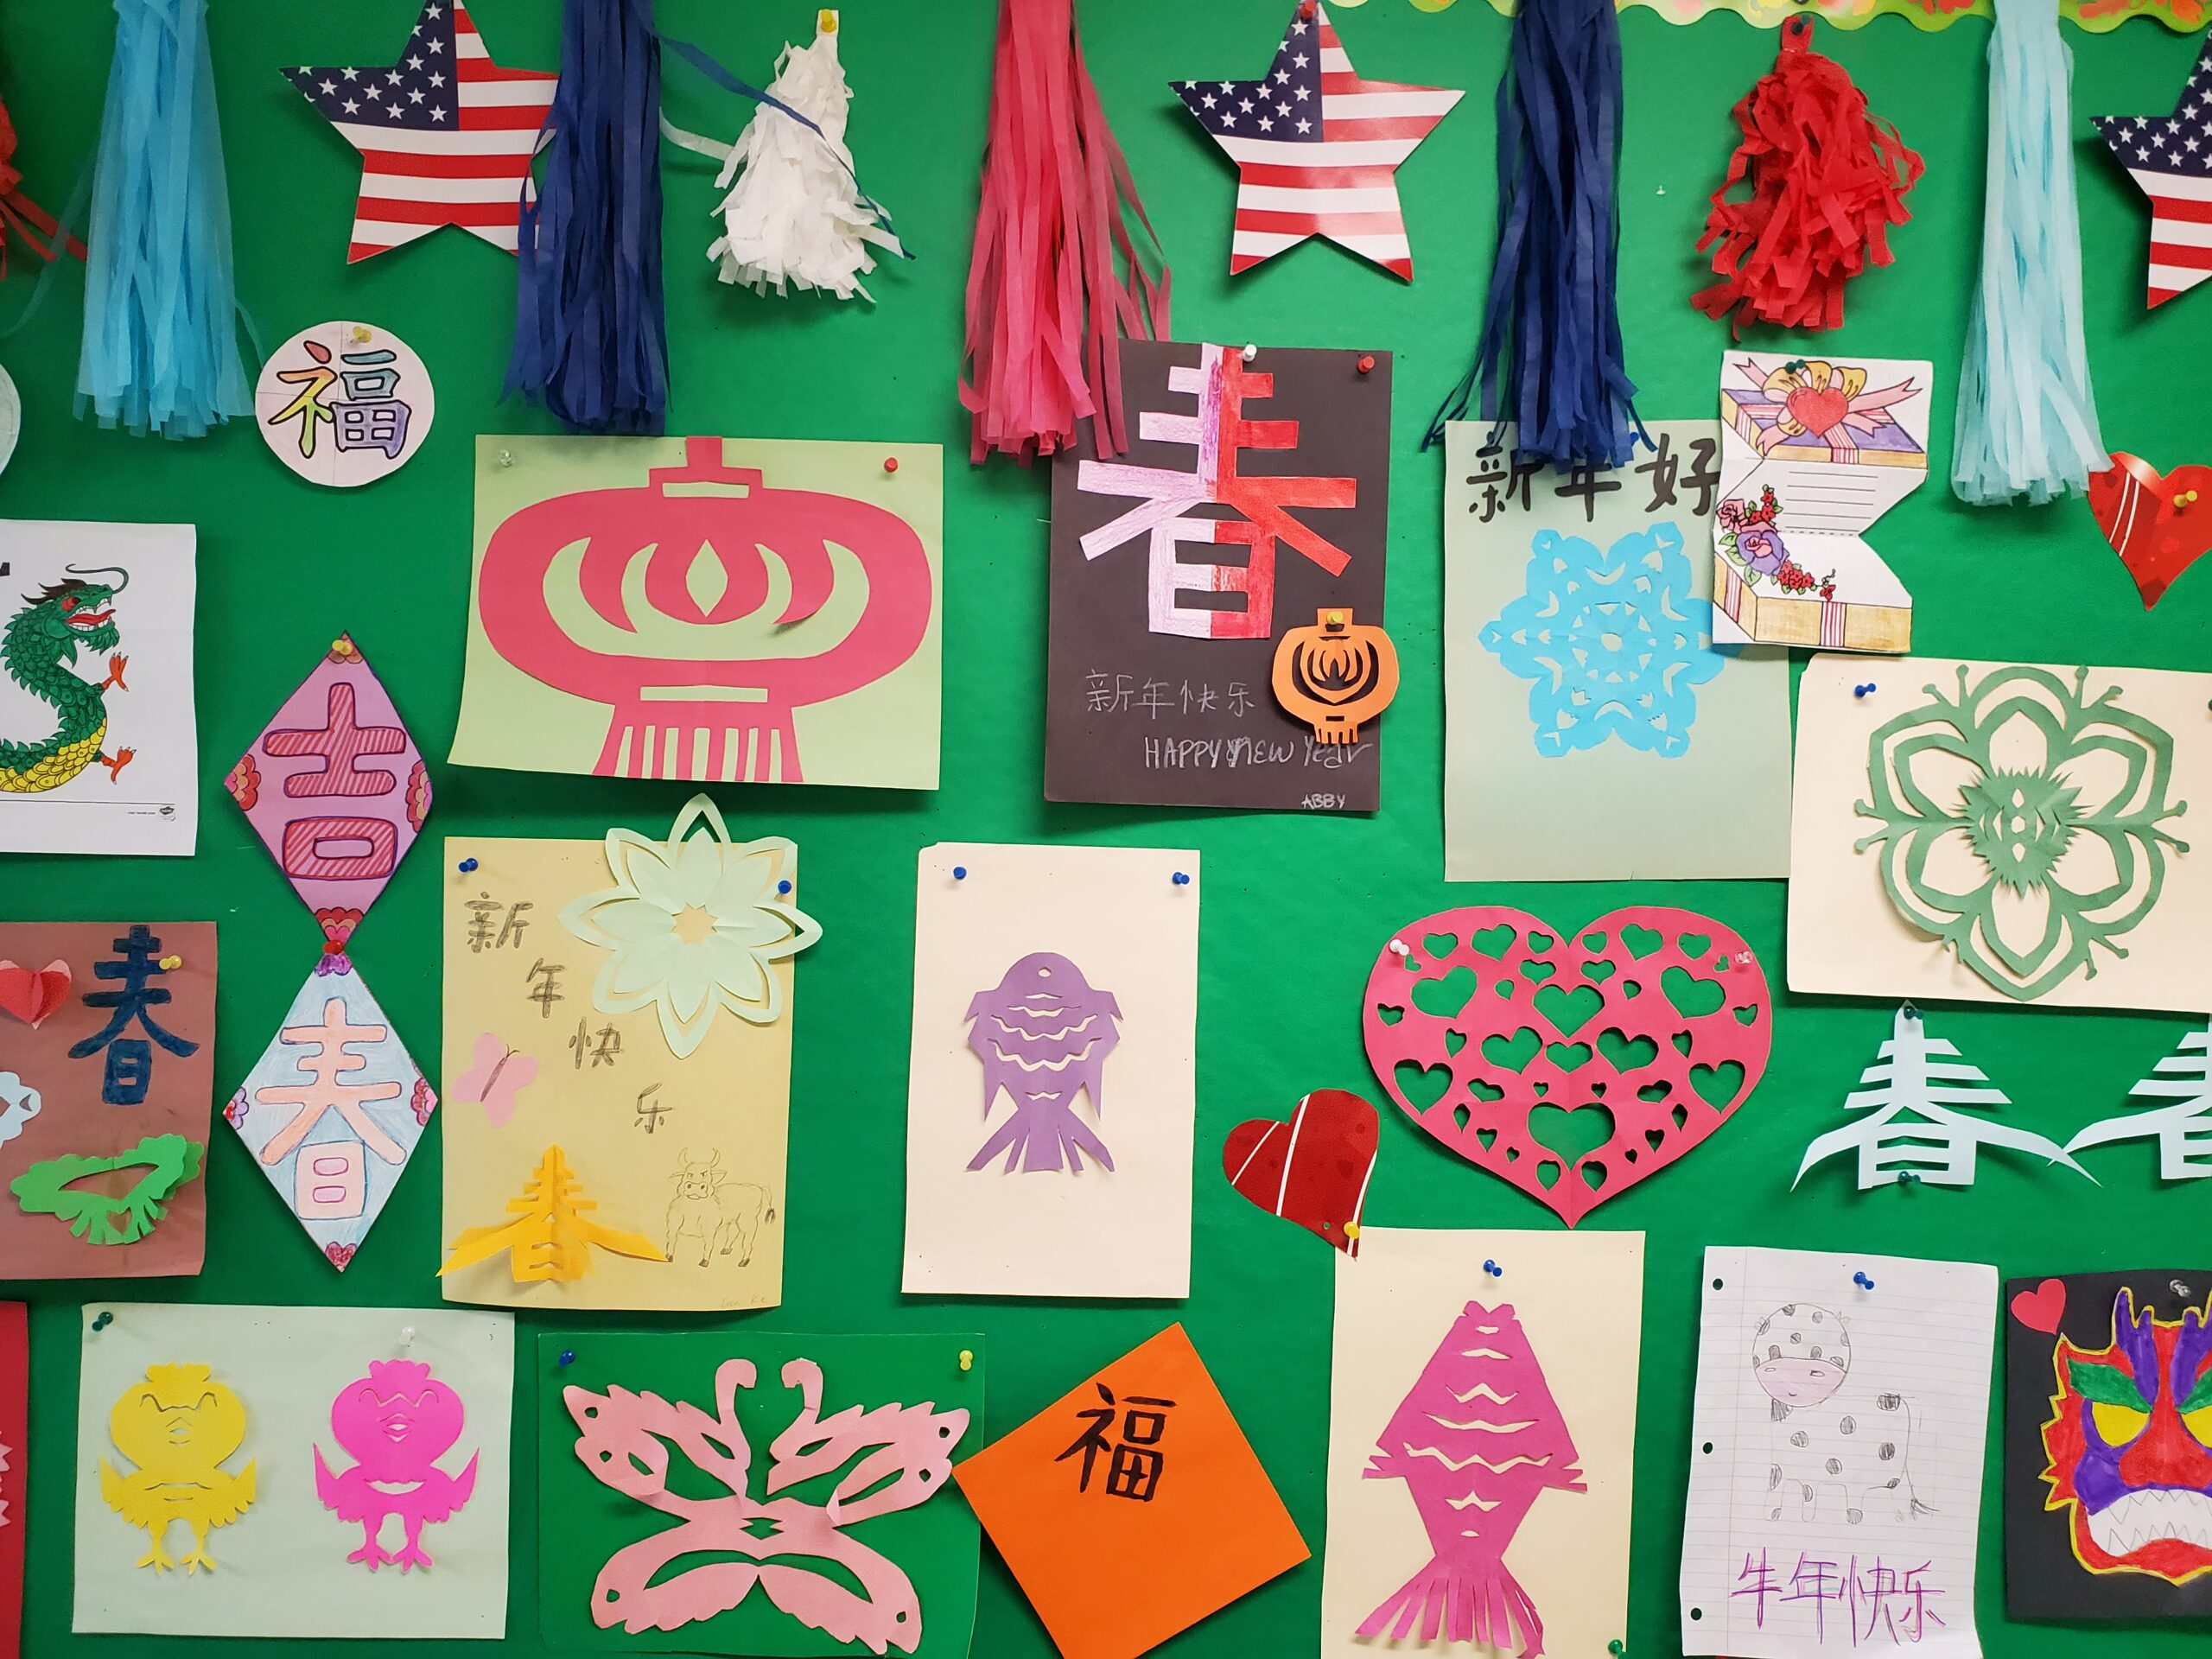 Bulletin board covered with Lunar New Year art projects